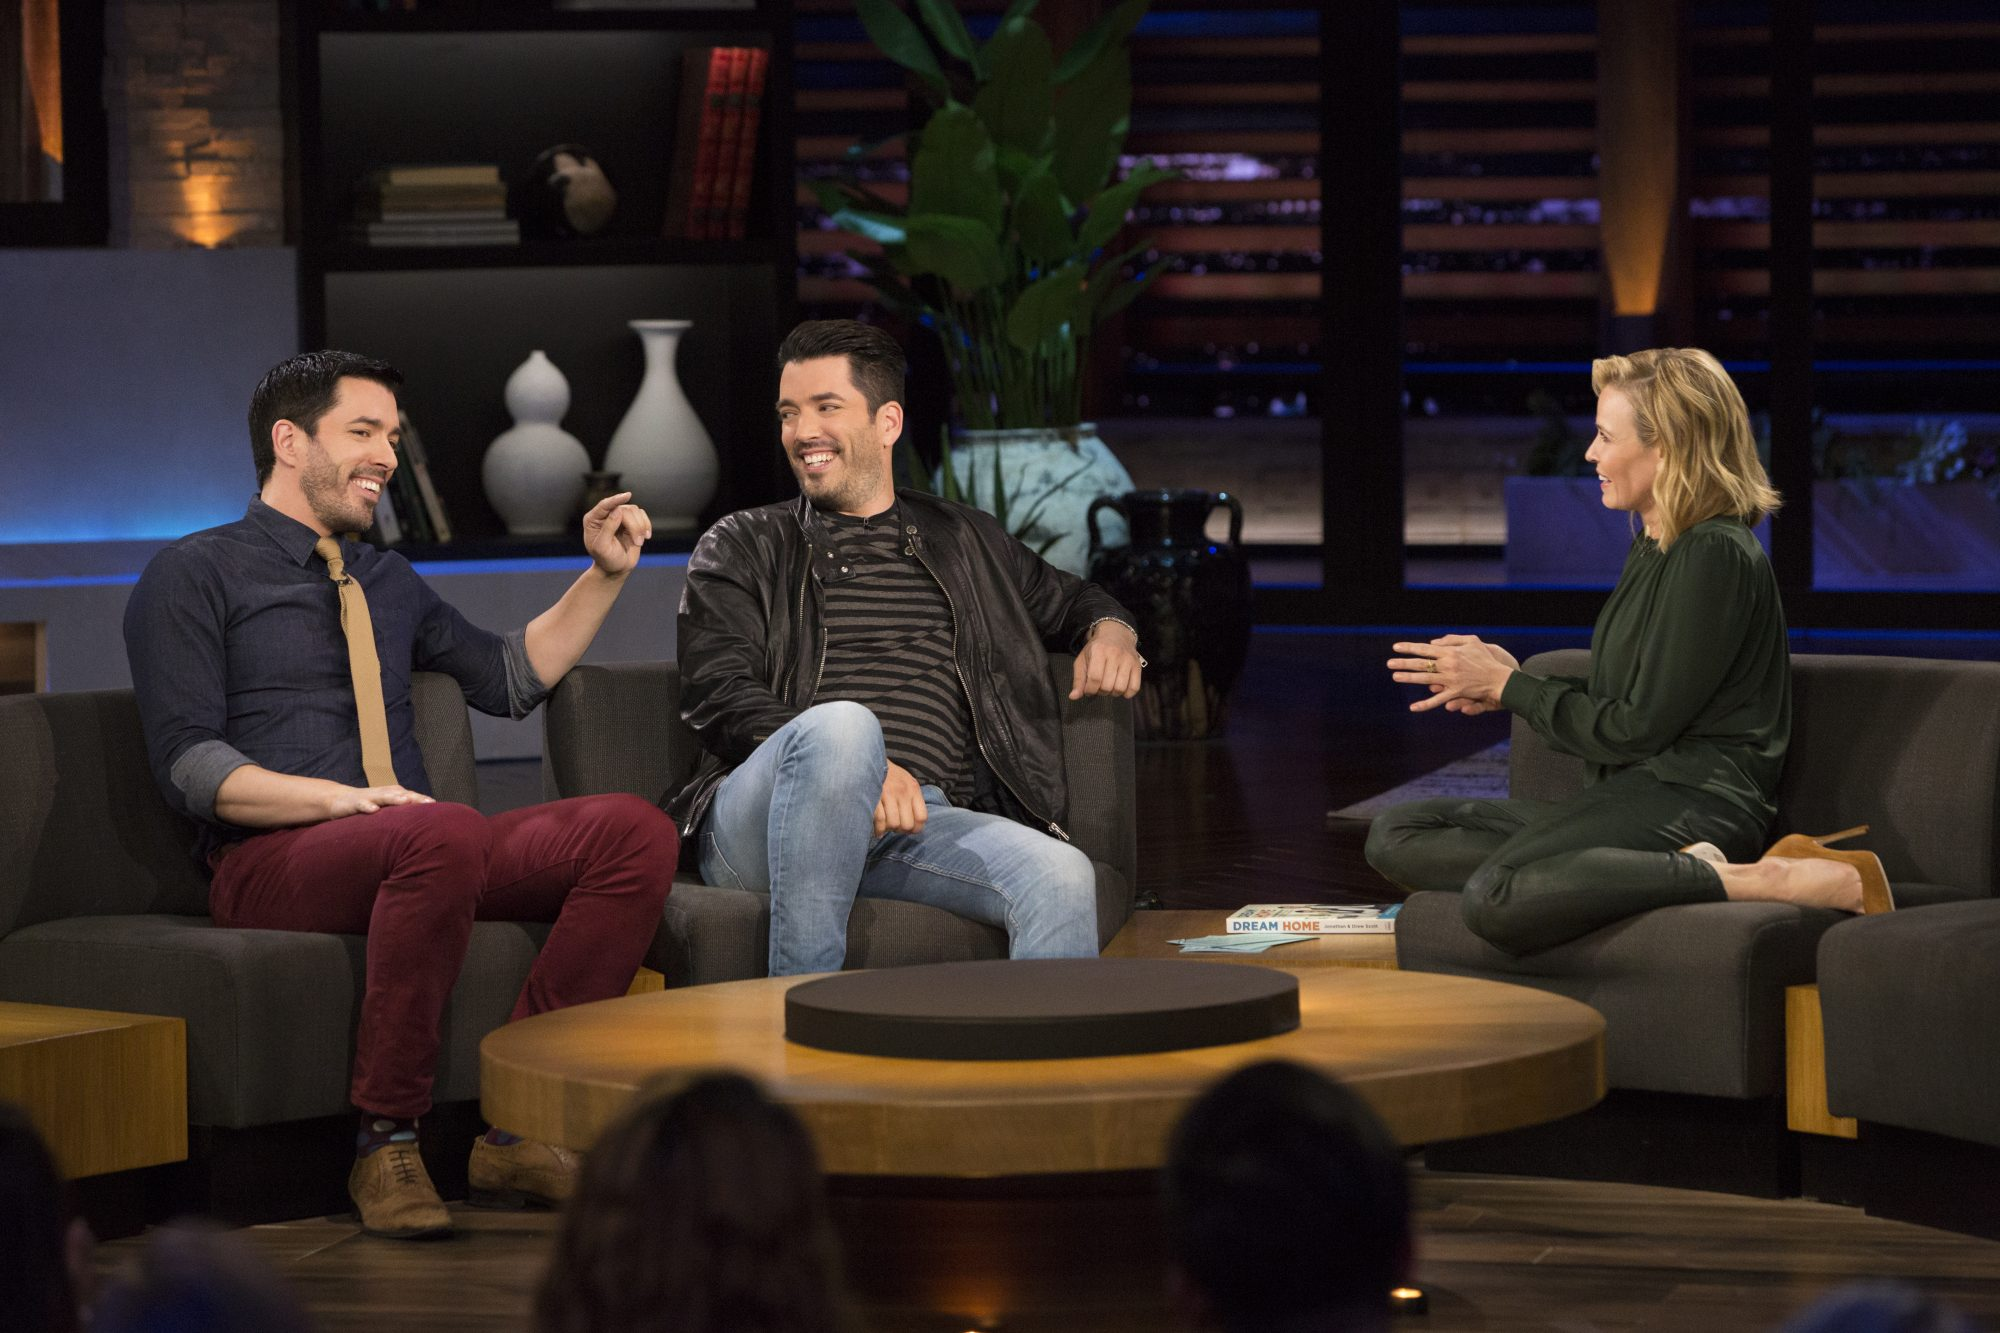 Los Angeles, California - October 10: Chelsea Handler Talk Show in Los Angeles on Monday, October 10, 2016. Guests include ) Taylor Lautner, Property Brothers: Jonathan and Drew Scott, and Matt Bellassai. (Photo by Tyler Golden/Netflix)